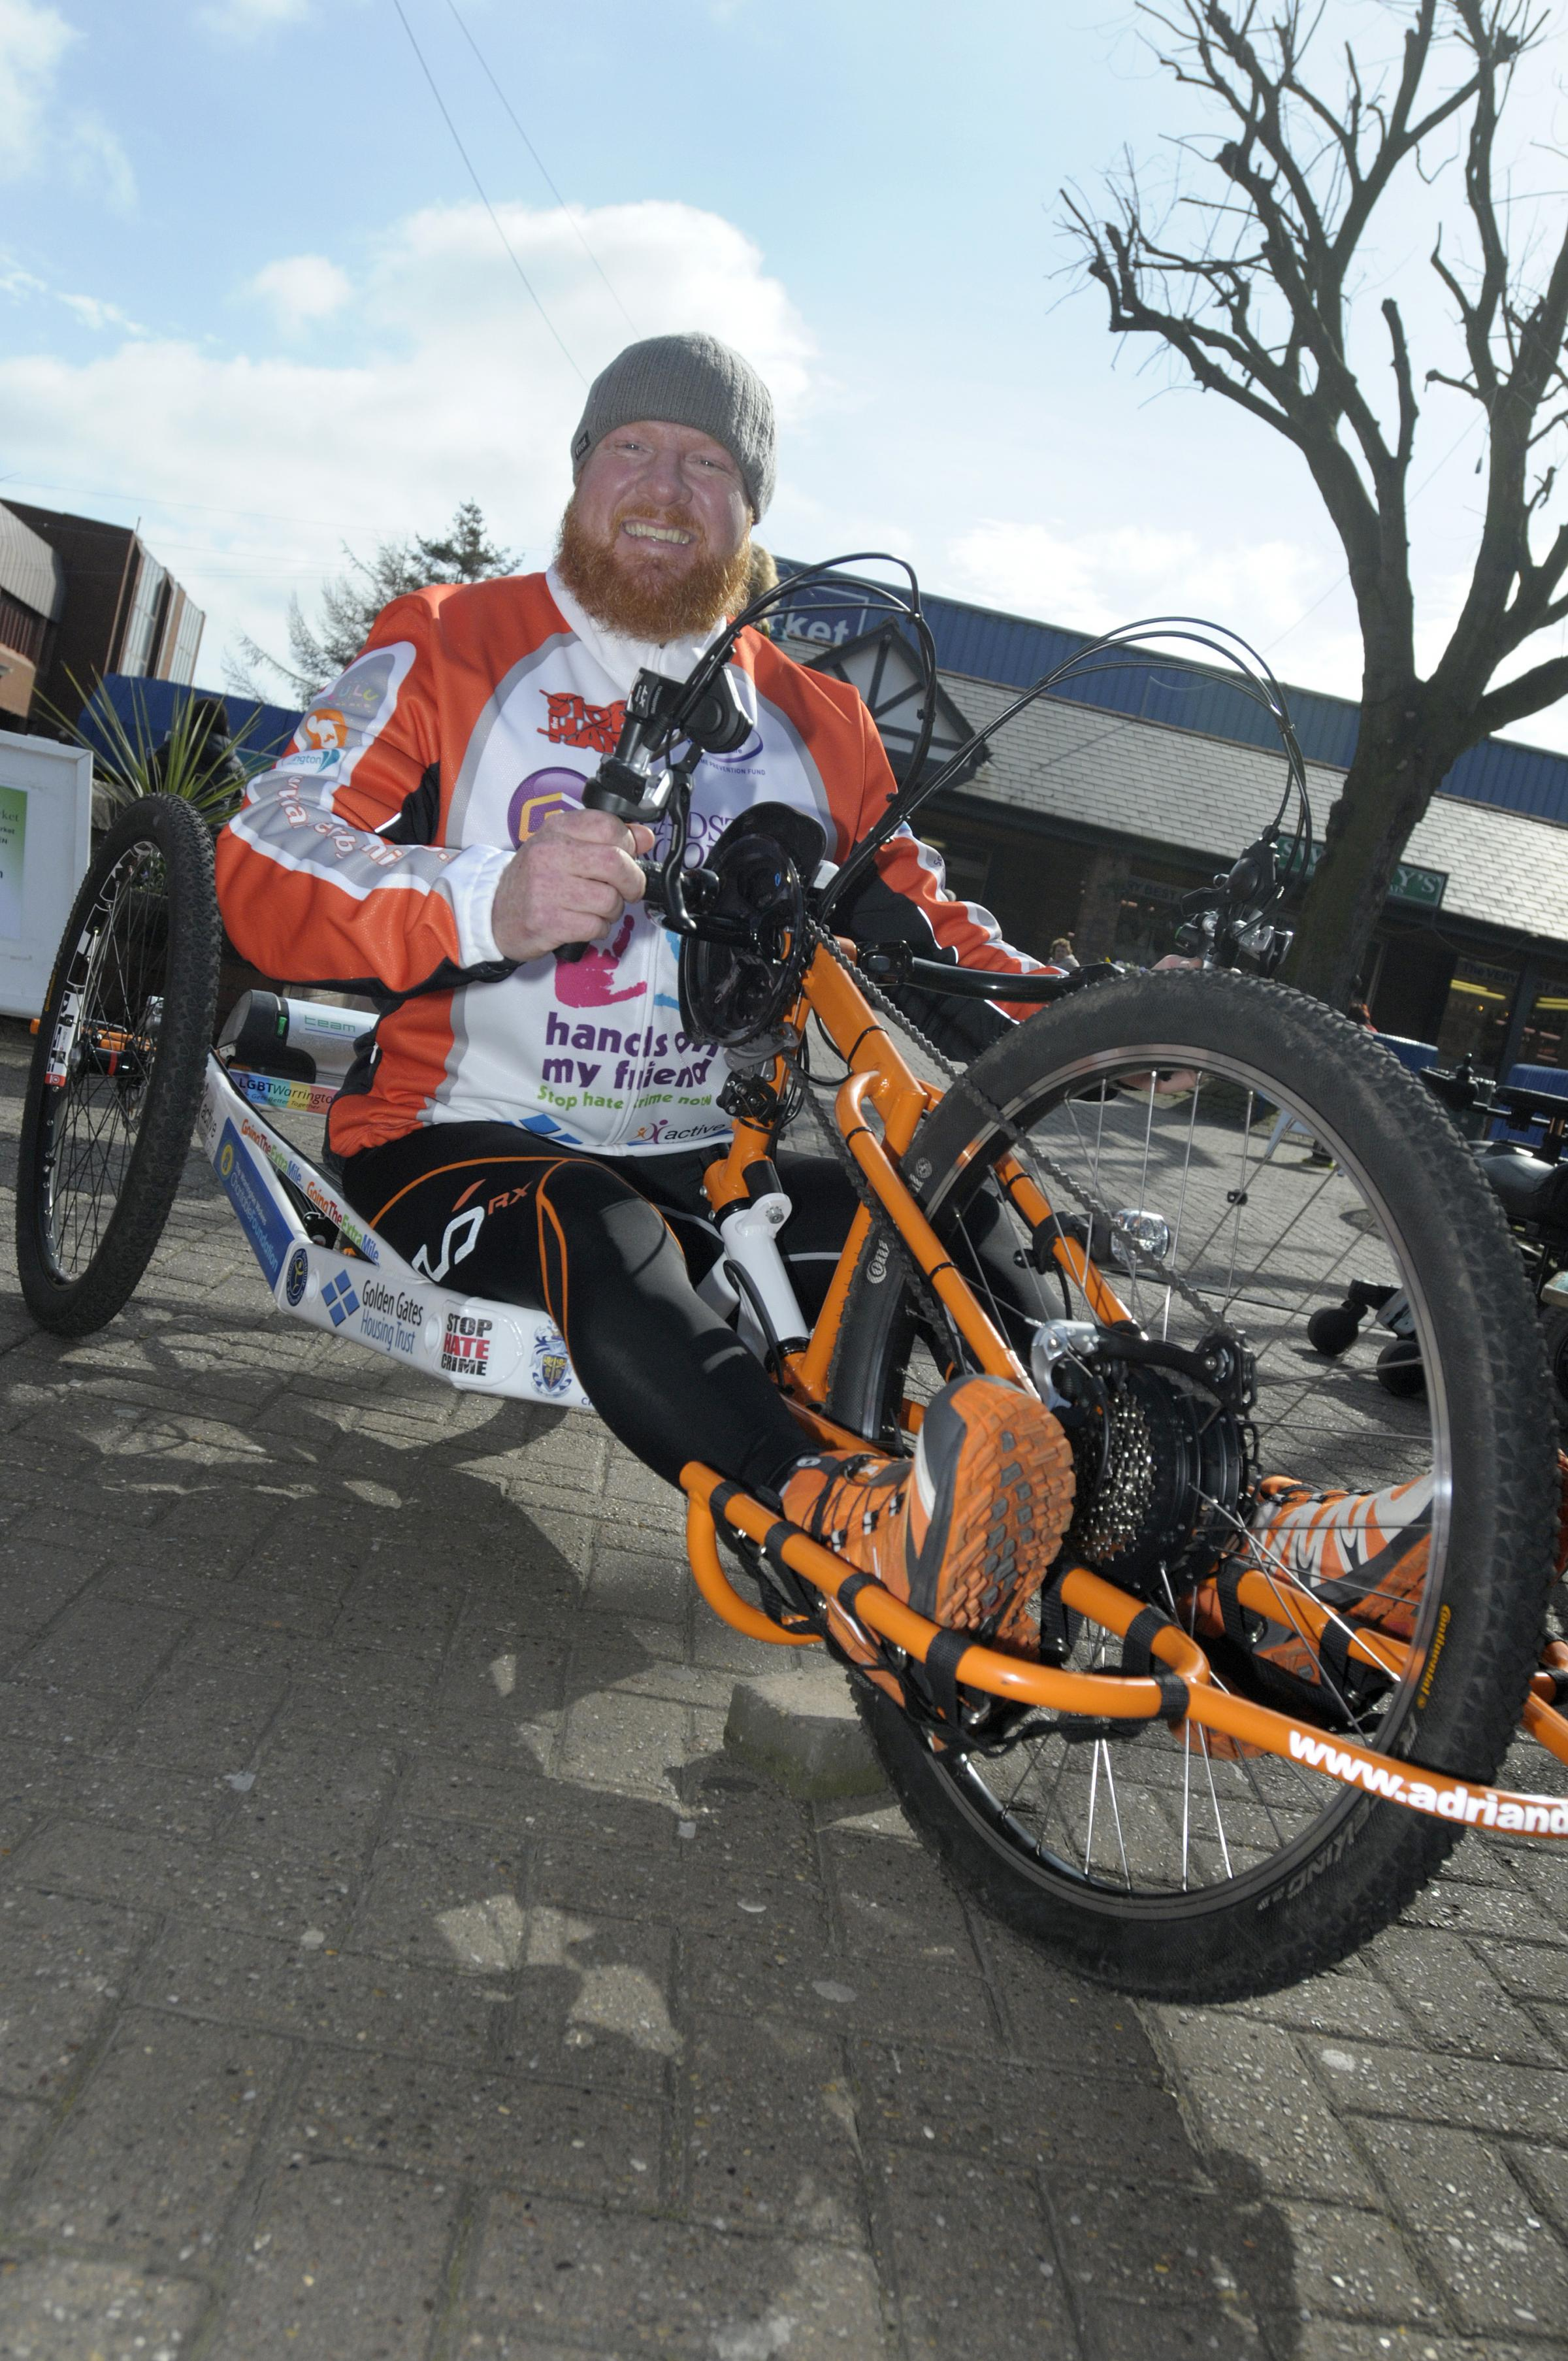 Adrian Derbyshire on his hand cycle.